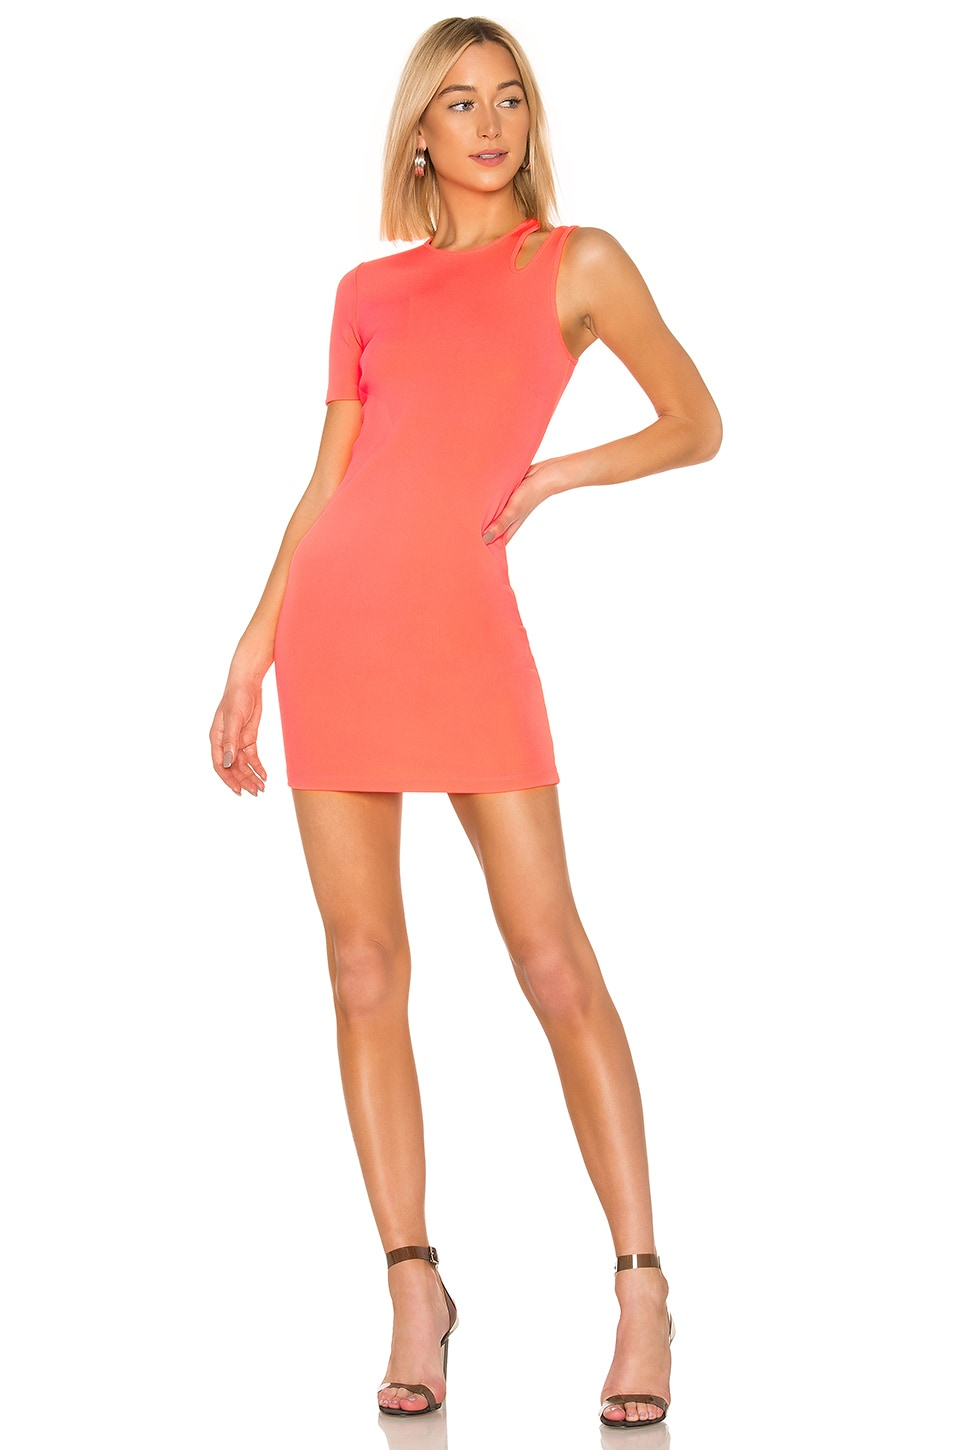 T by Alexander Wang Sleek Rib Asymmetric Dress in Hot Pink